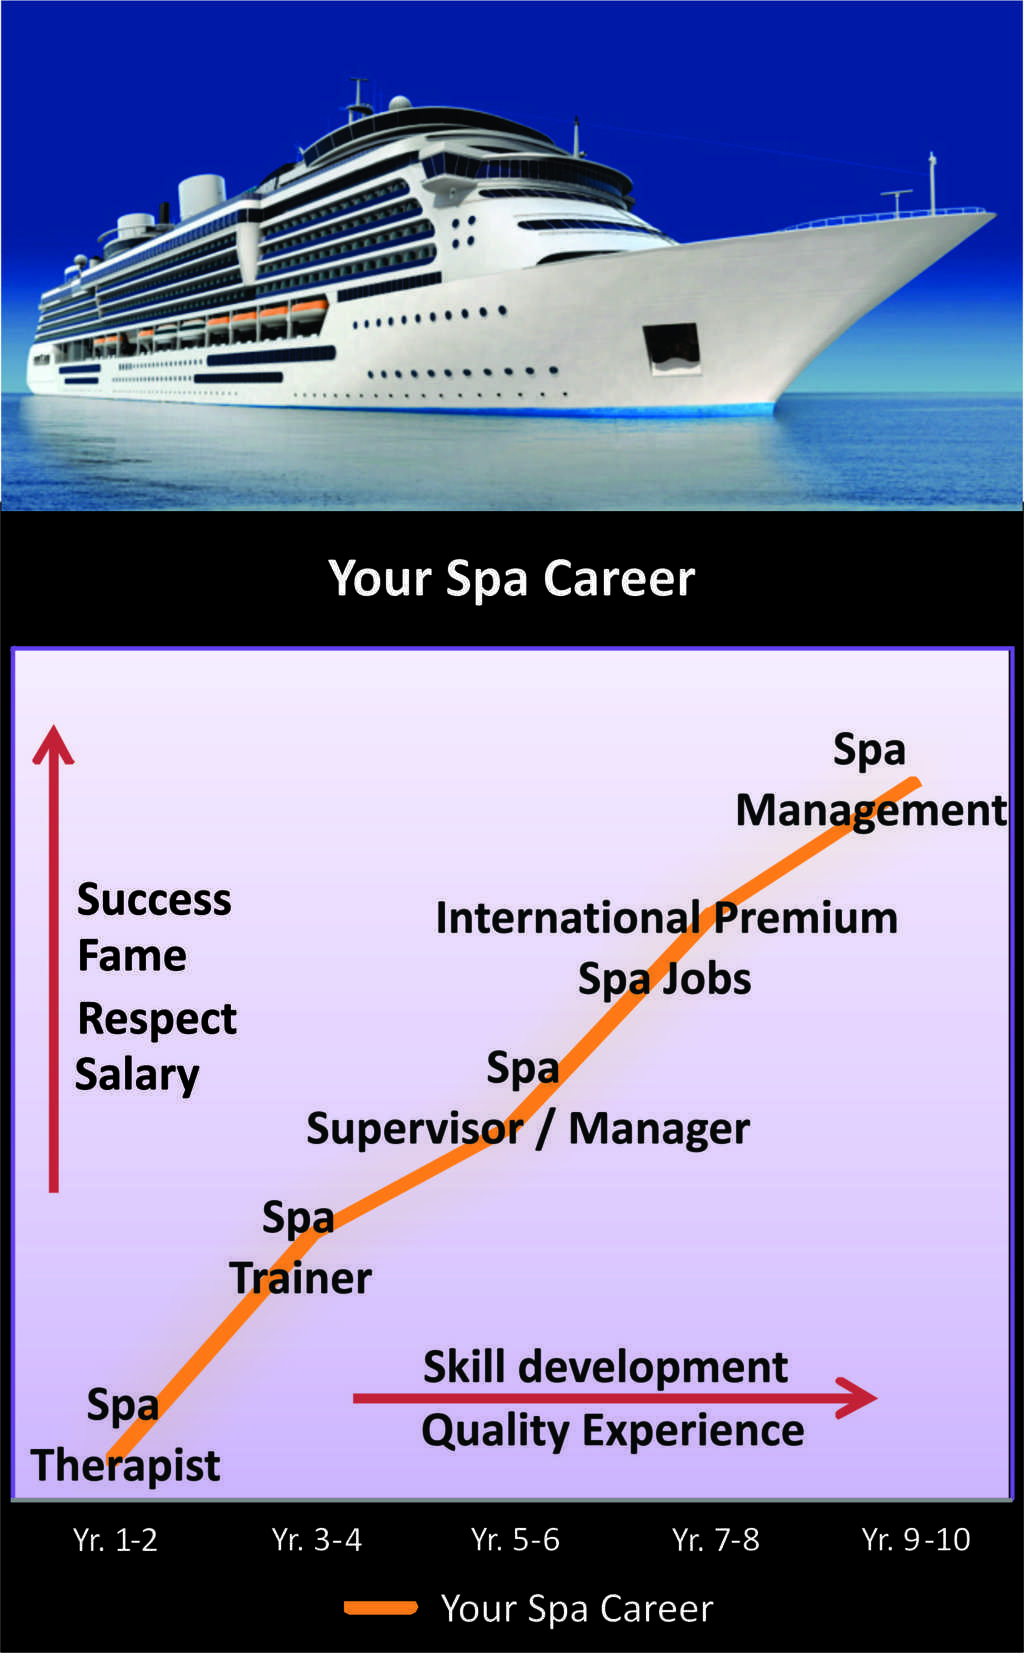 SSS - Your Spa Career (FILEminimizer).jpg